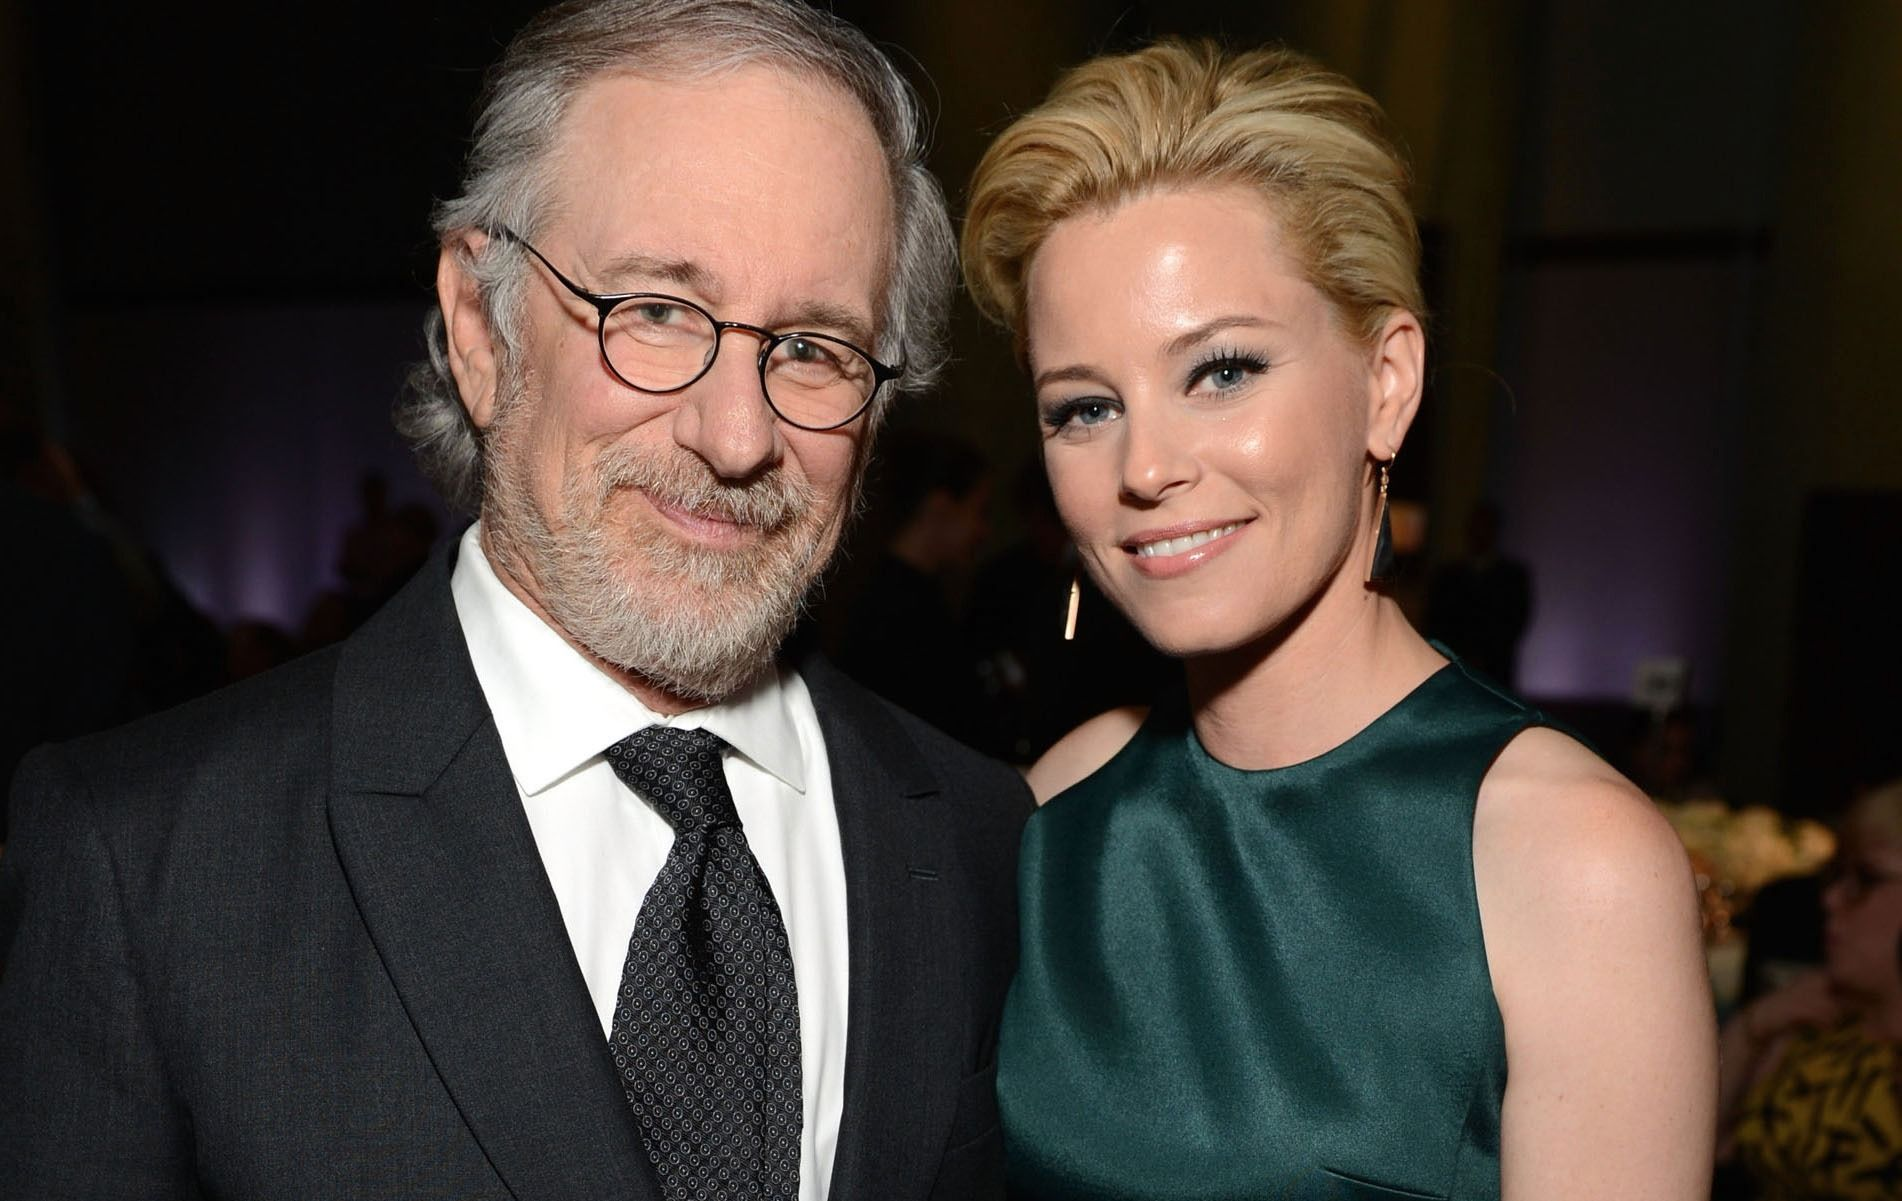 Elizabeth Banks criticizes Steven Spielberg for lack of female leads